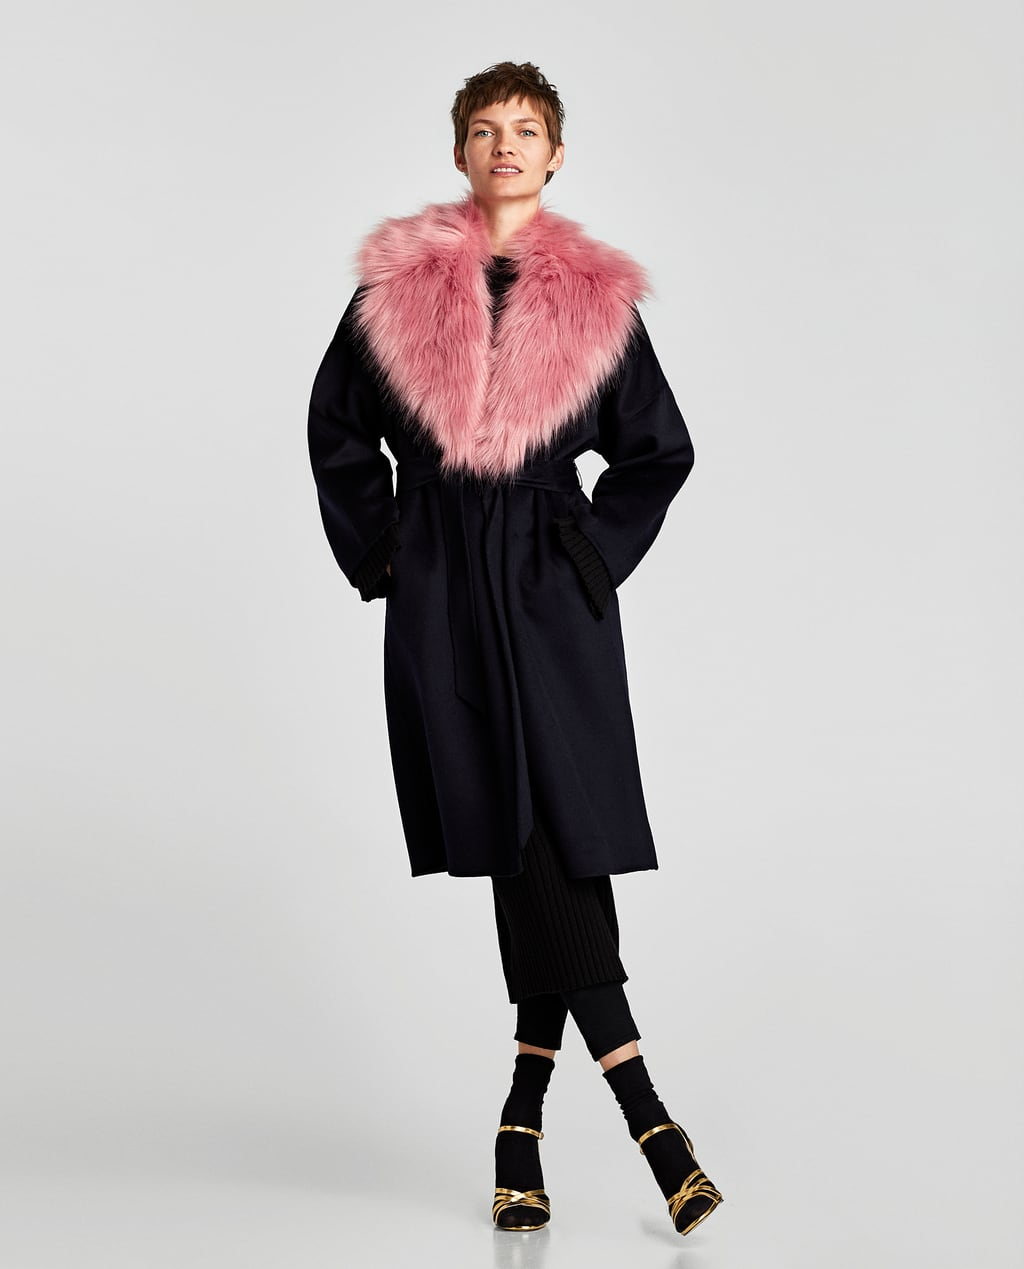 LONG WOOL COAT WITH BELT - Coats-OUTERWEAR-WOMAN | ZARA United States